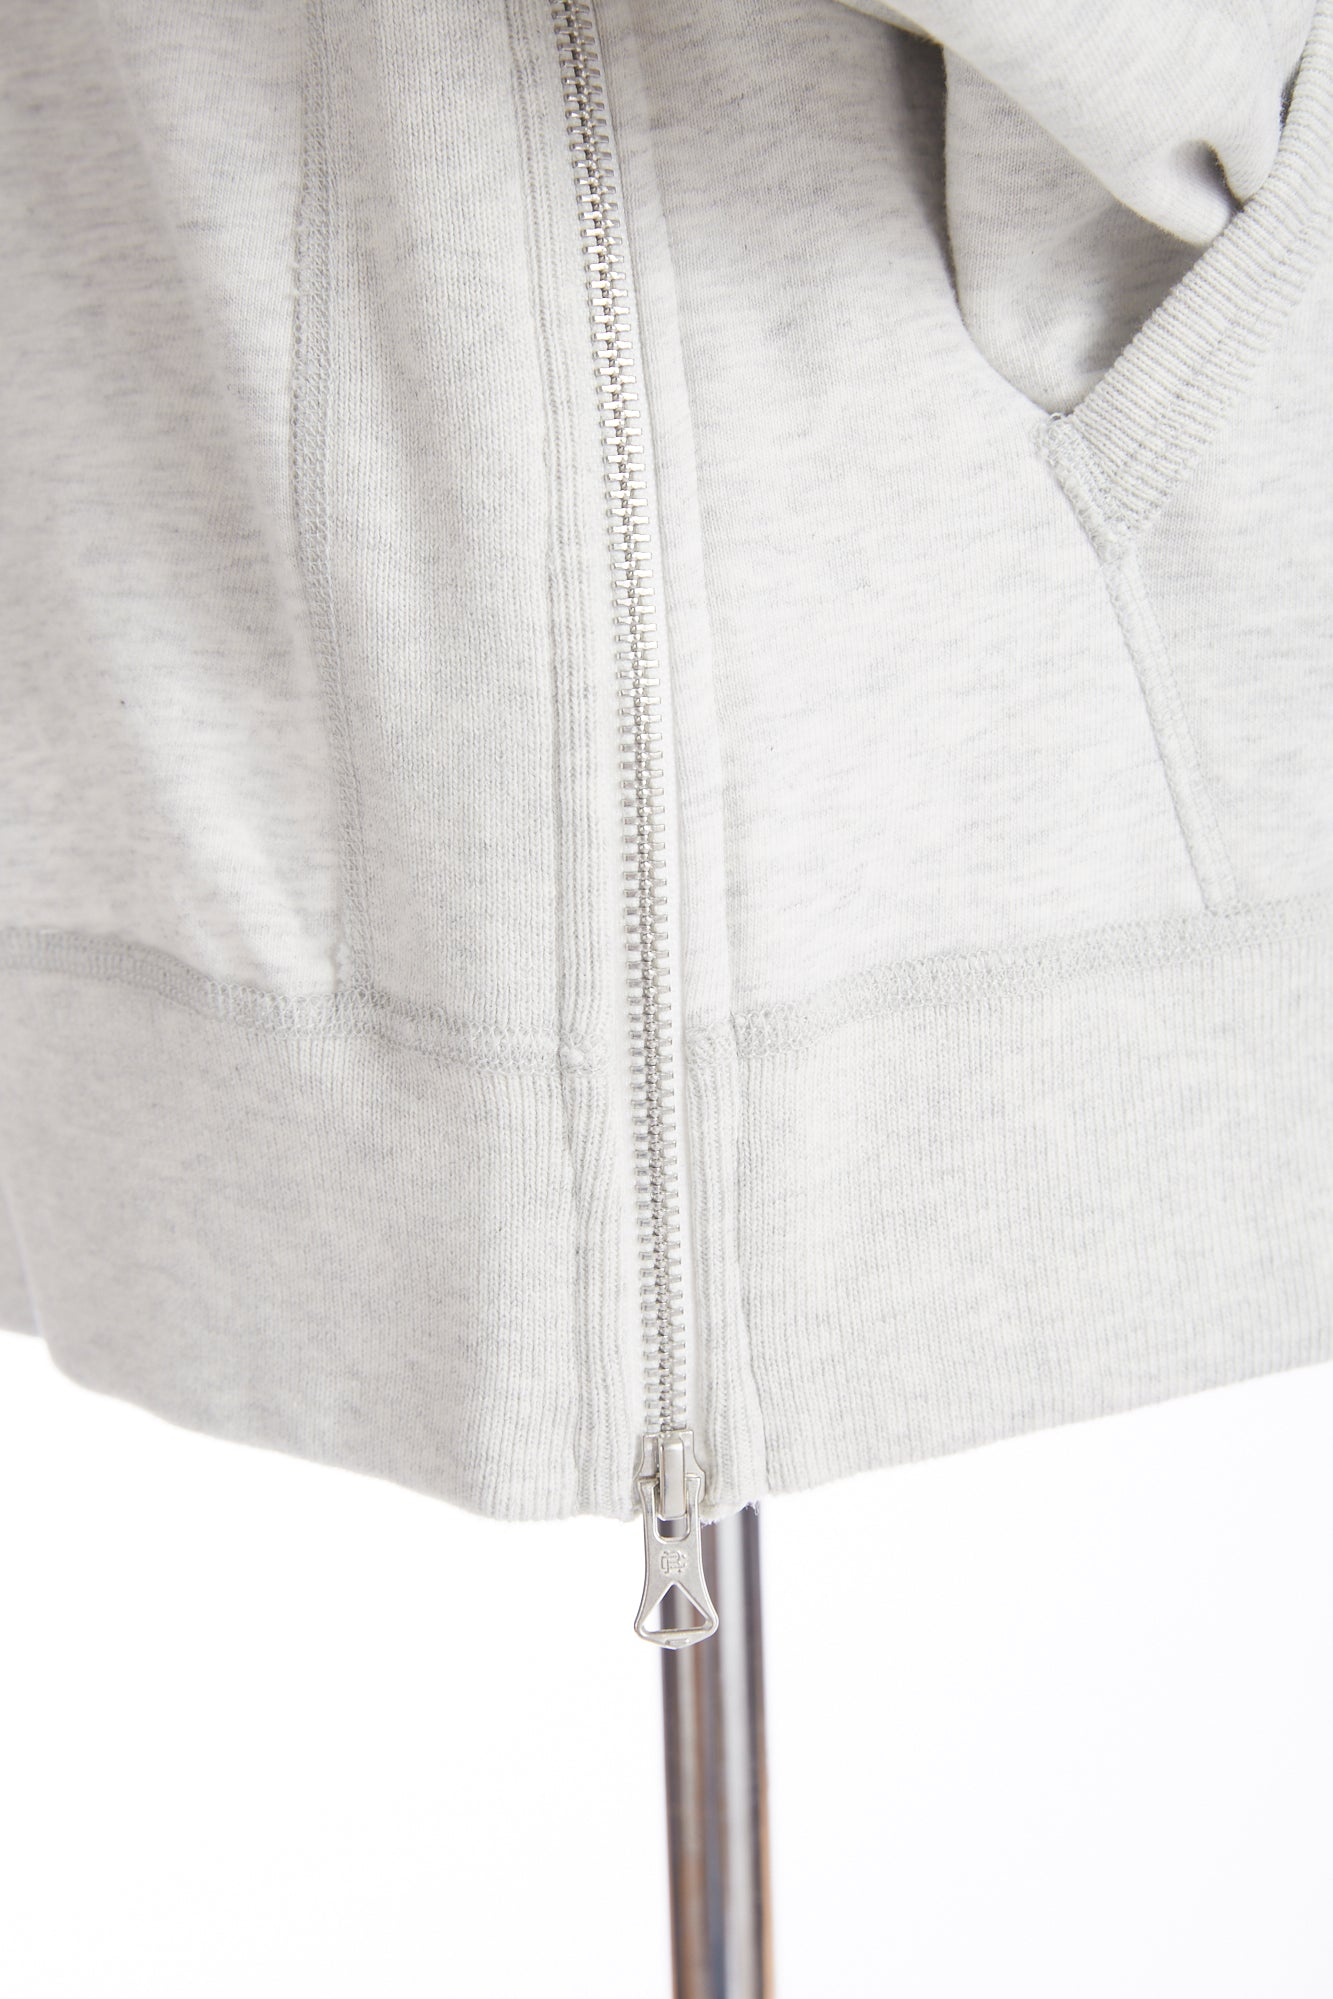 Reigning Champ Heather Ash Midweight Terry Side Zip